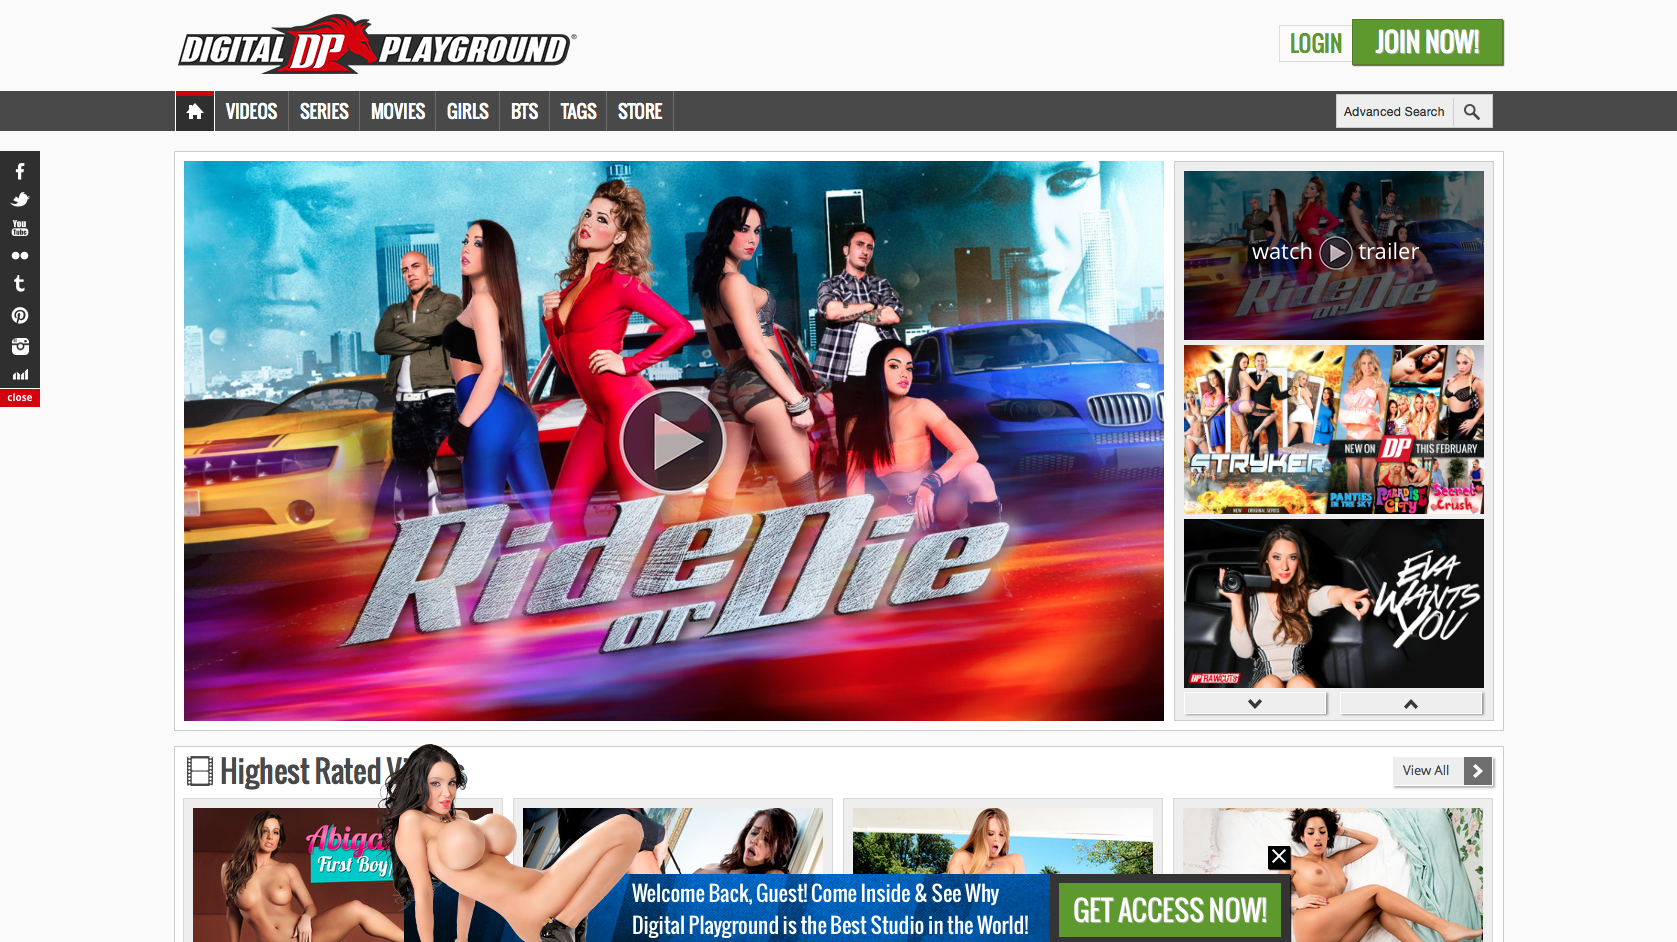 Digitalplayground.com Website